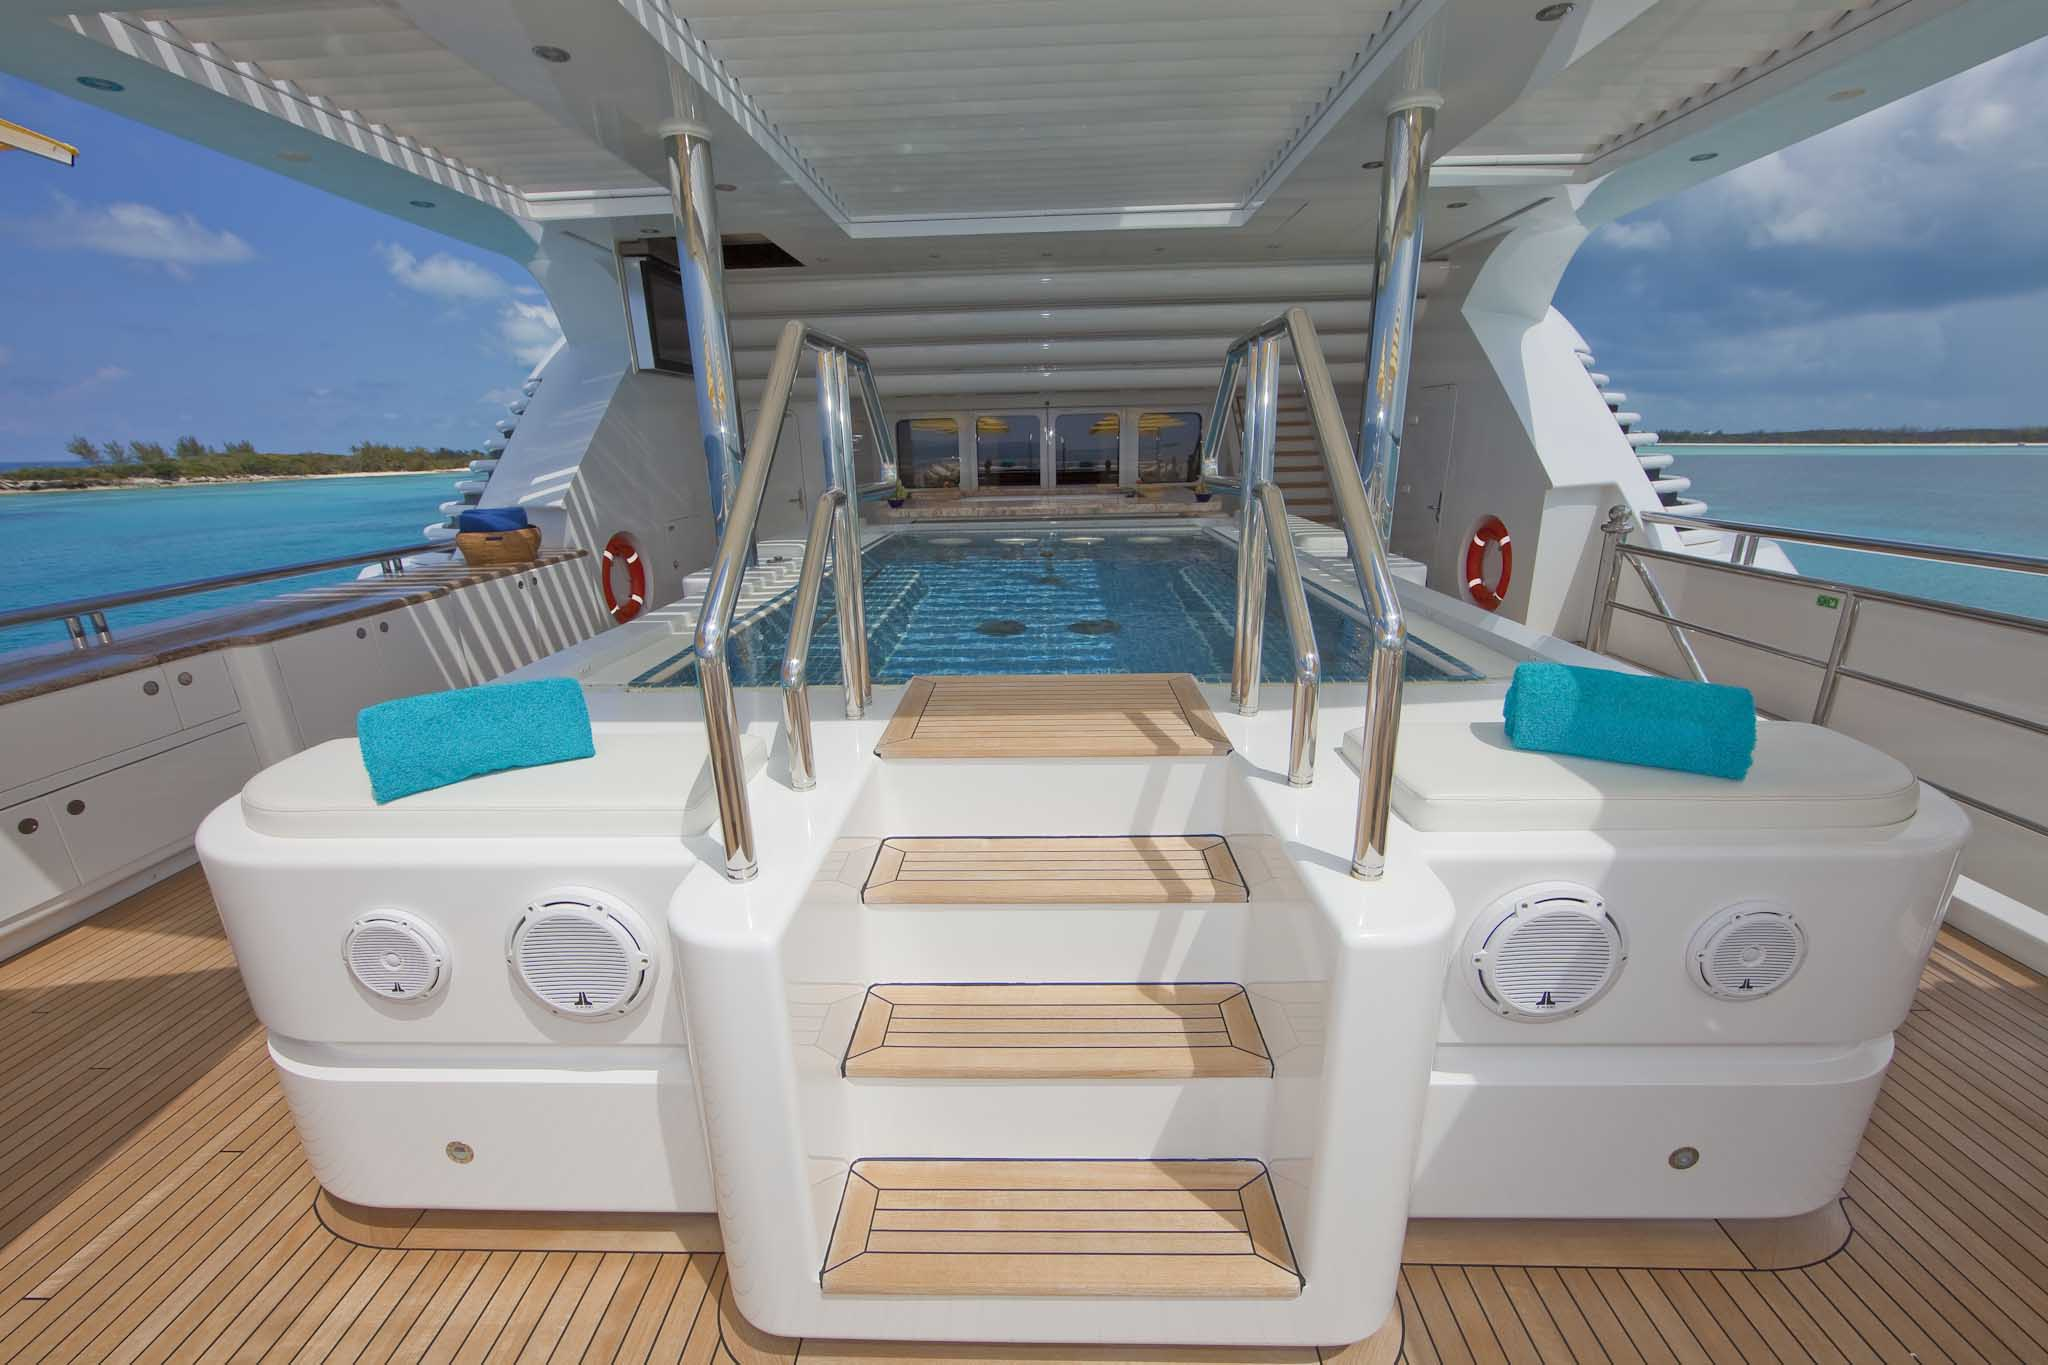 Deck Spa Pool Image Gallery Luxury Yacht Browser By